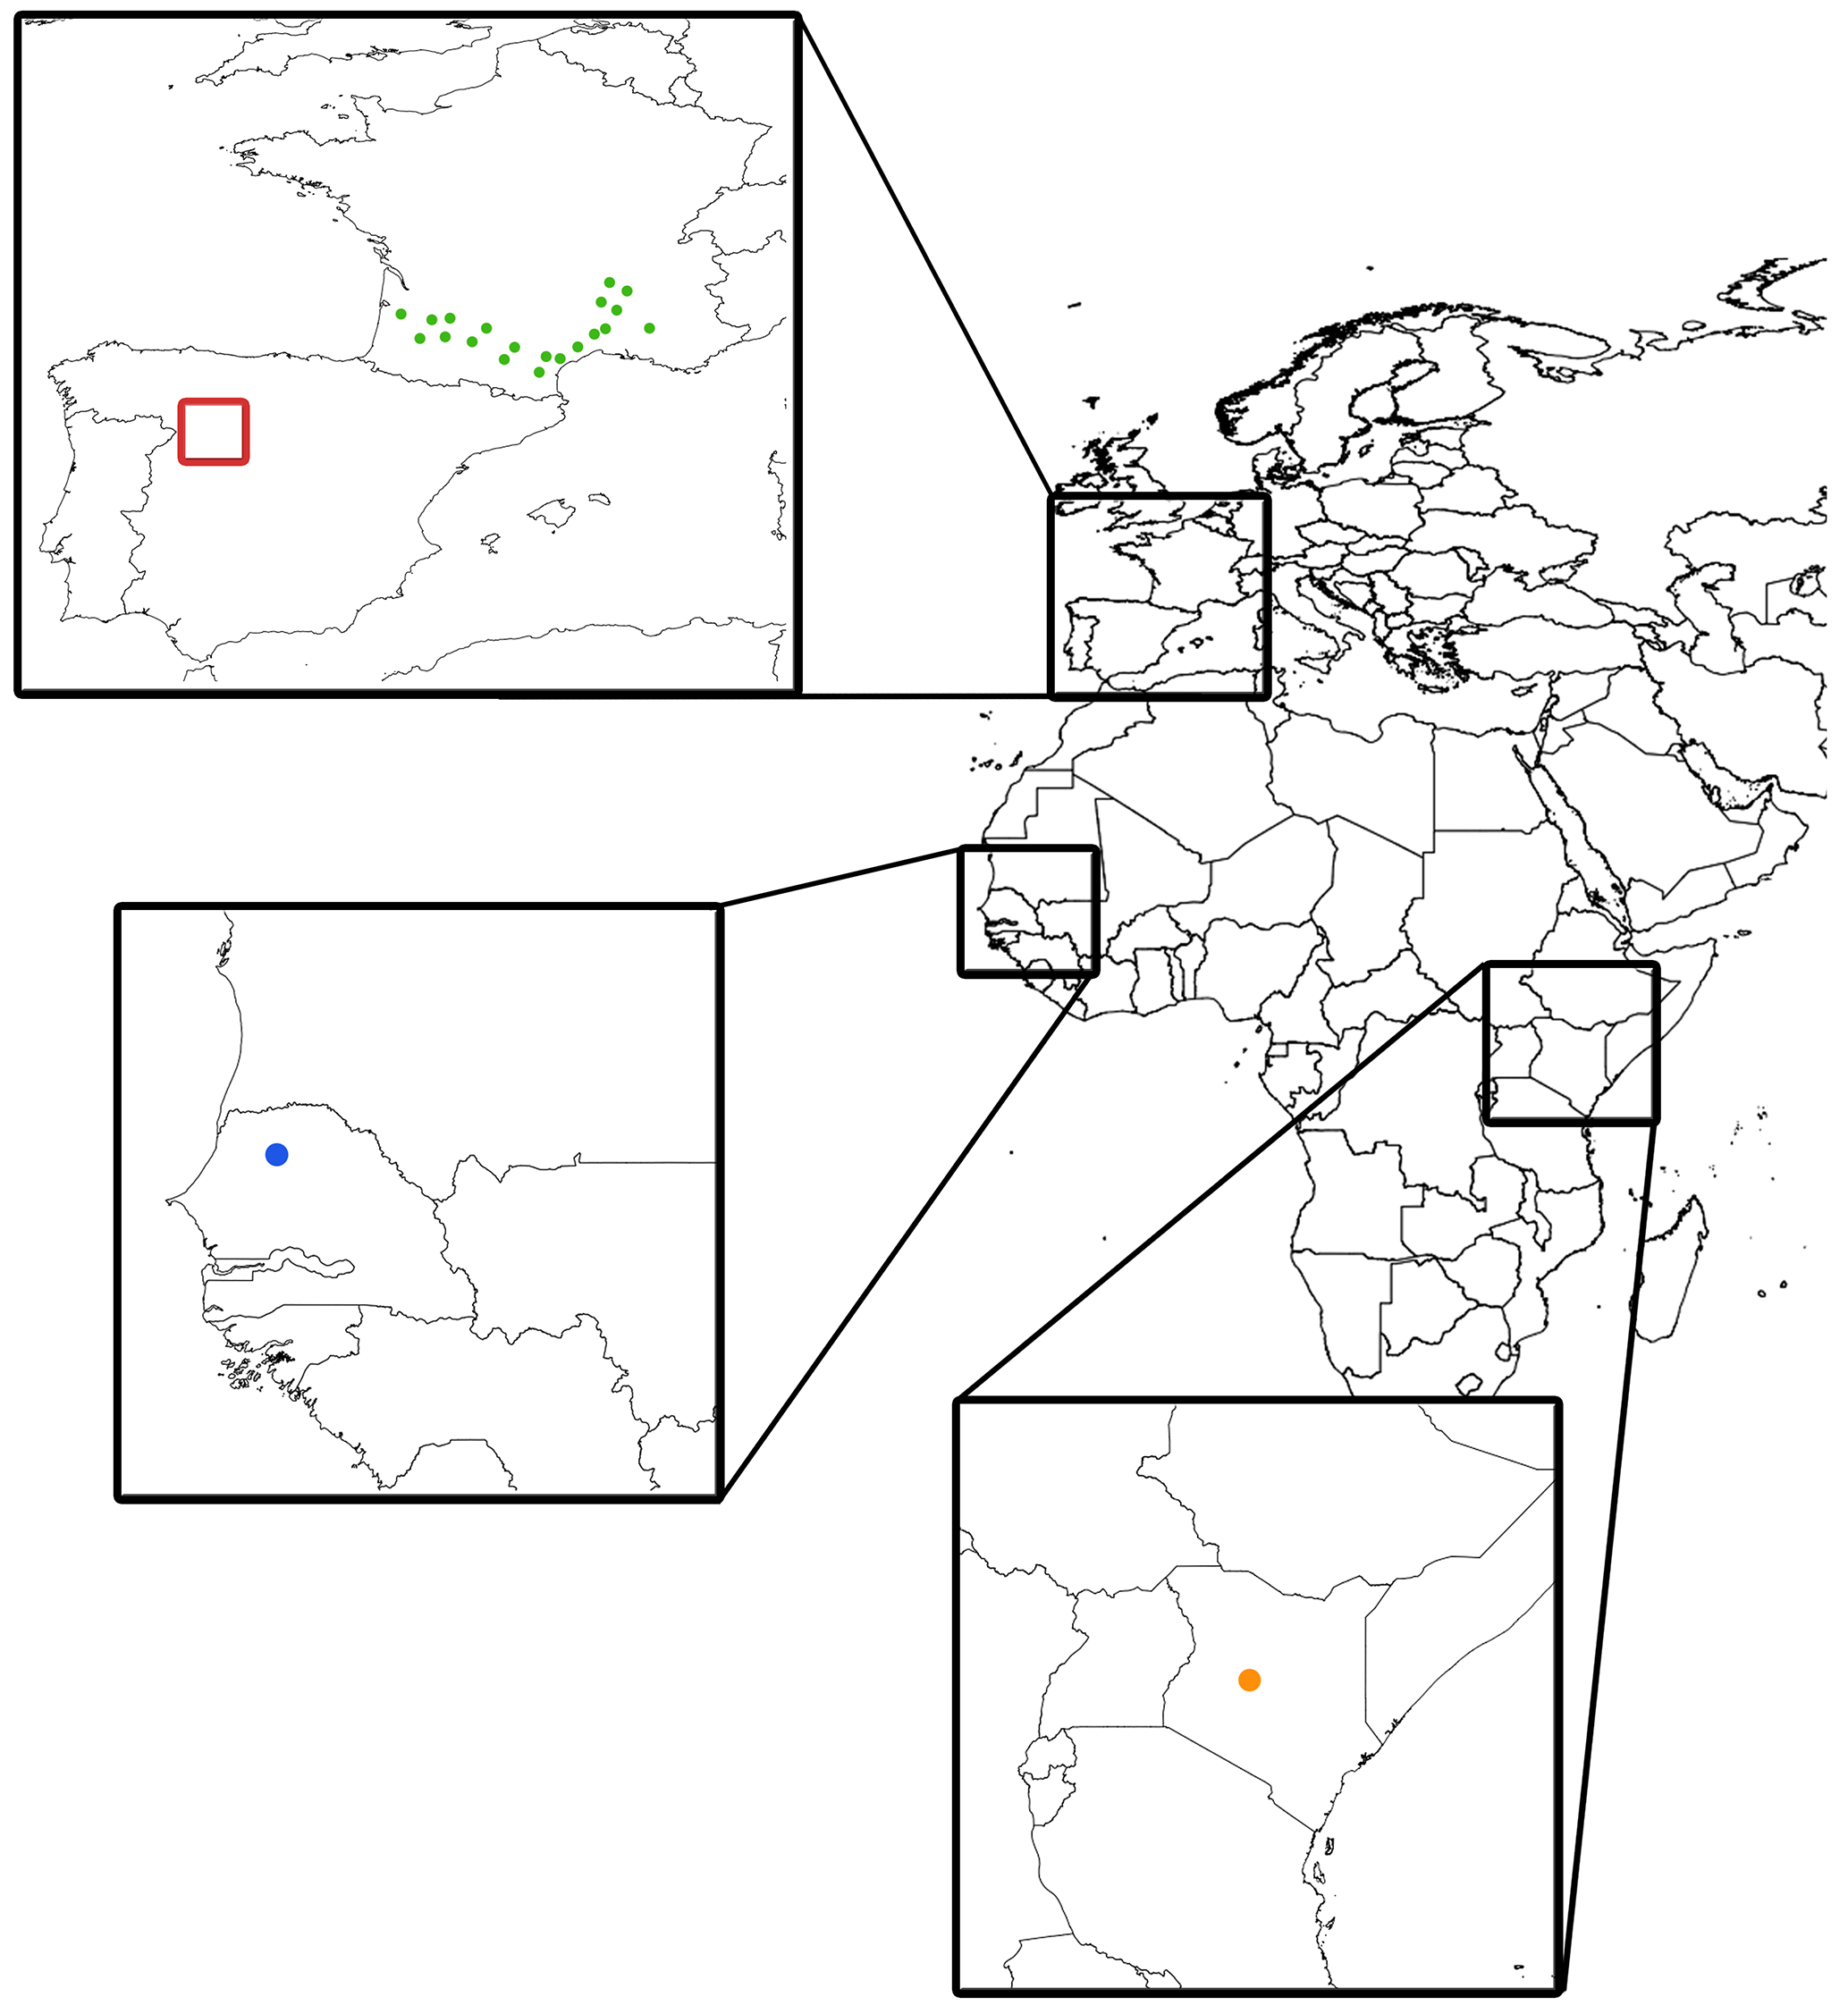 The spatial regarding the spatial representativeness ccuart Image collections